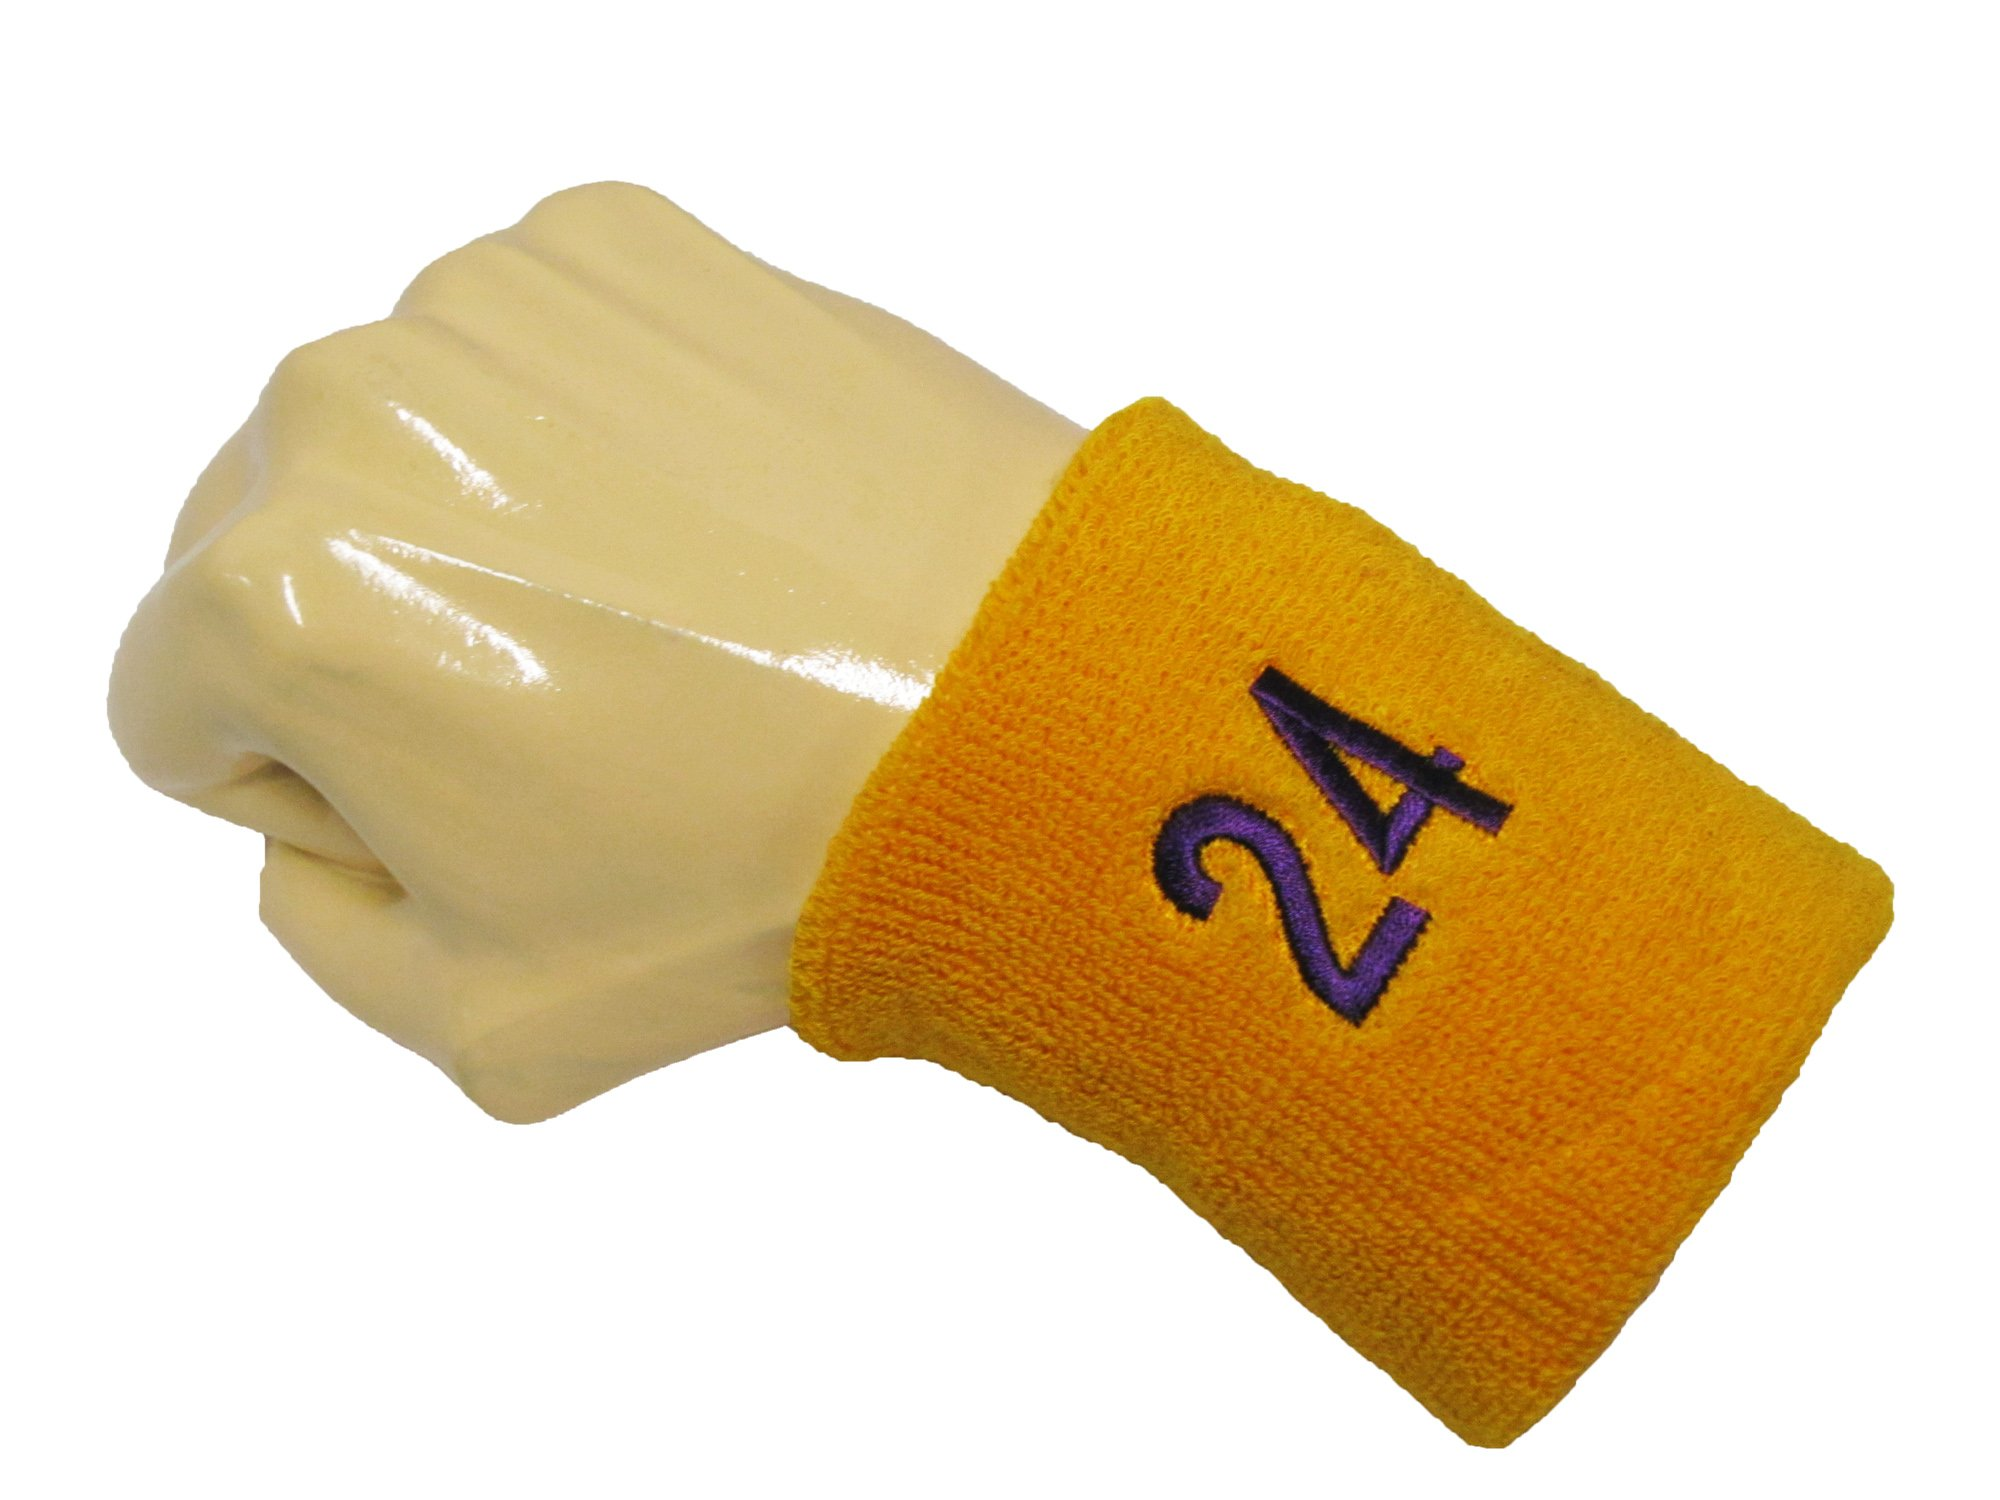 Number 24 Like LA Laker Purple 8 COUVER Basketball Star Golden Yellow Sweatbands with Purple